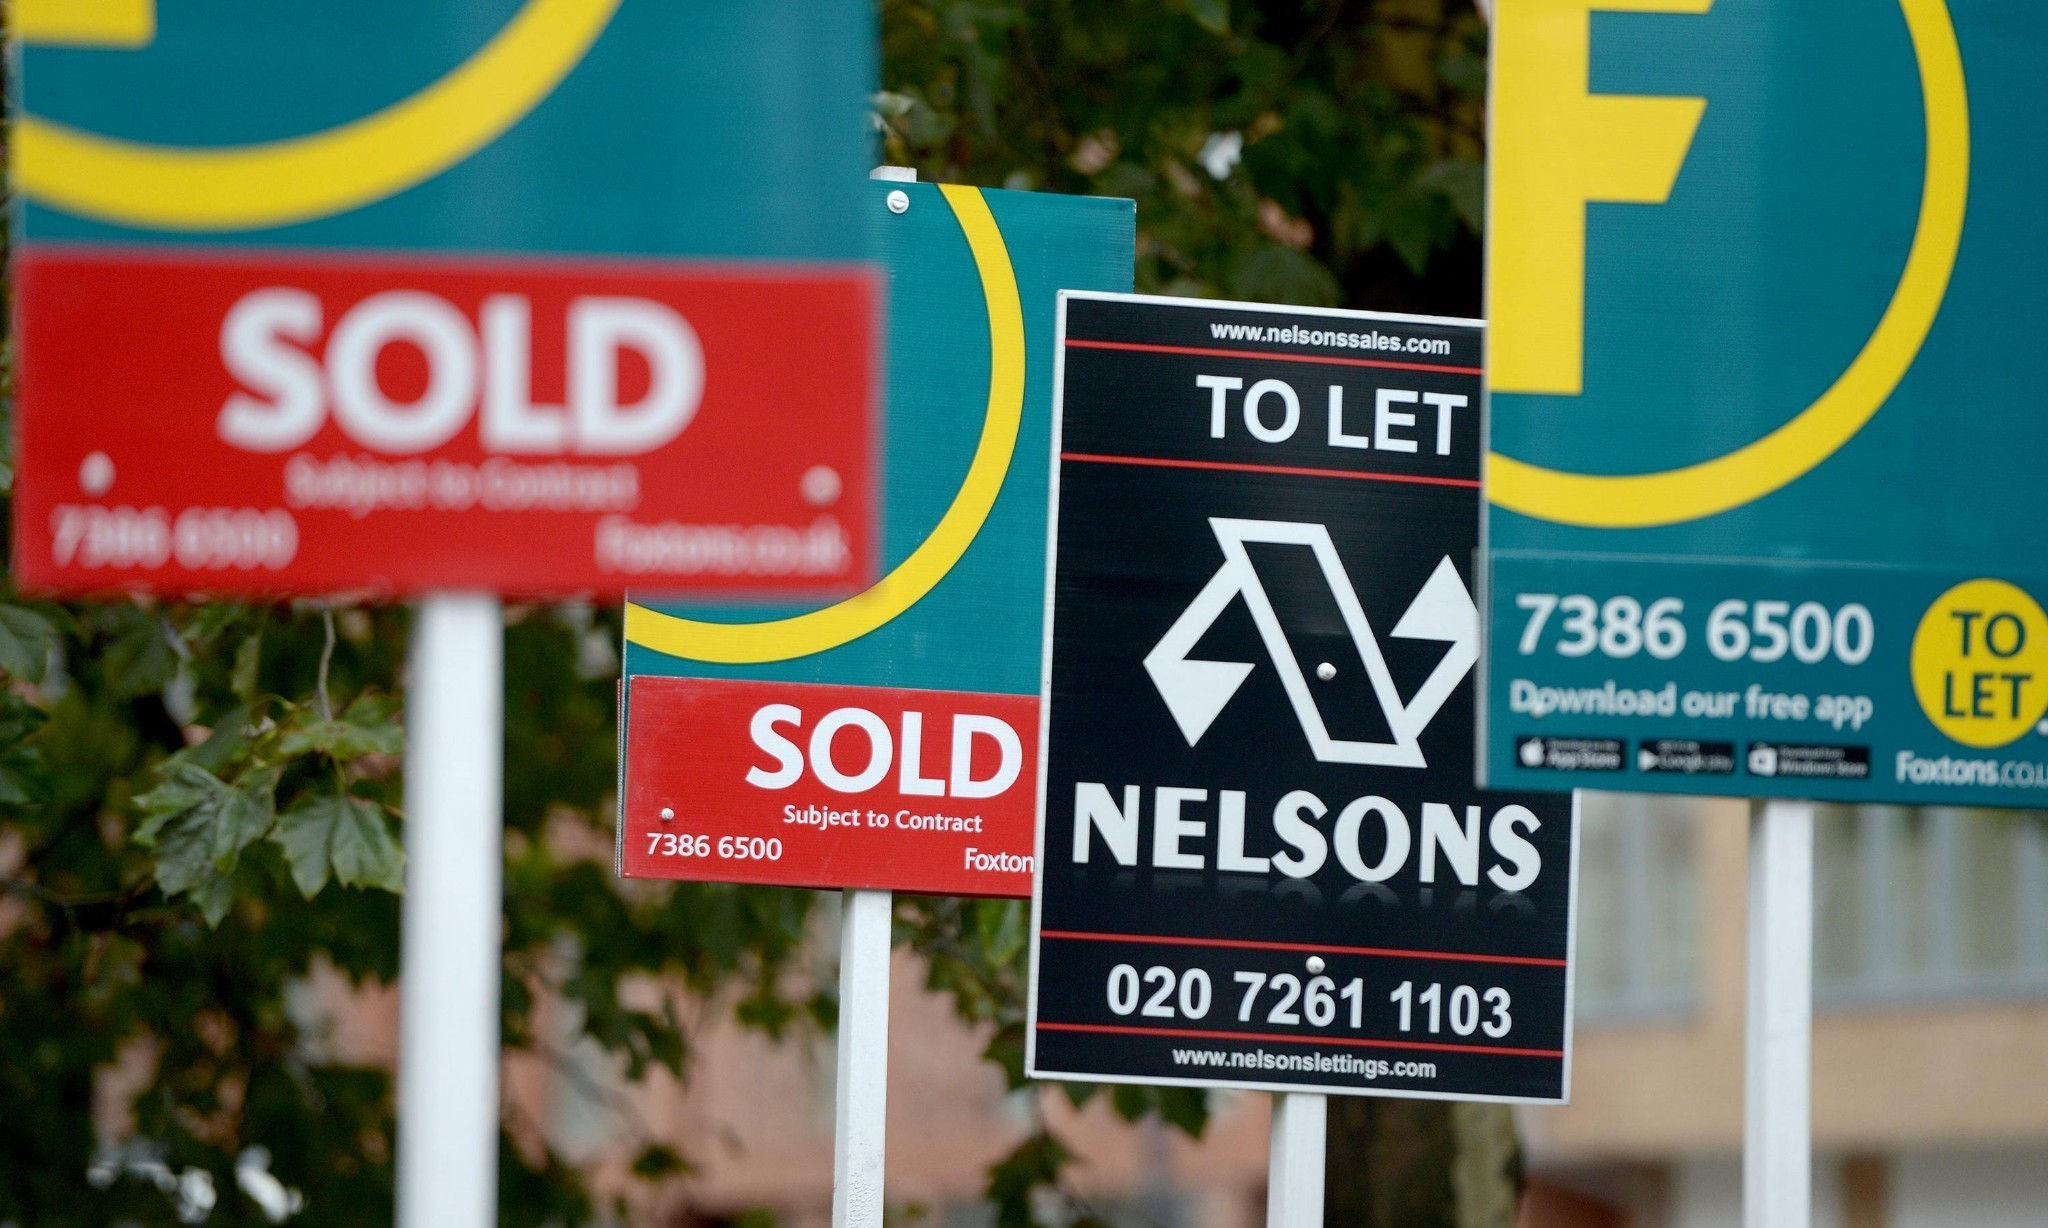 Huge leap in number of people cashing in and moving out of London in 2015